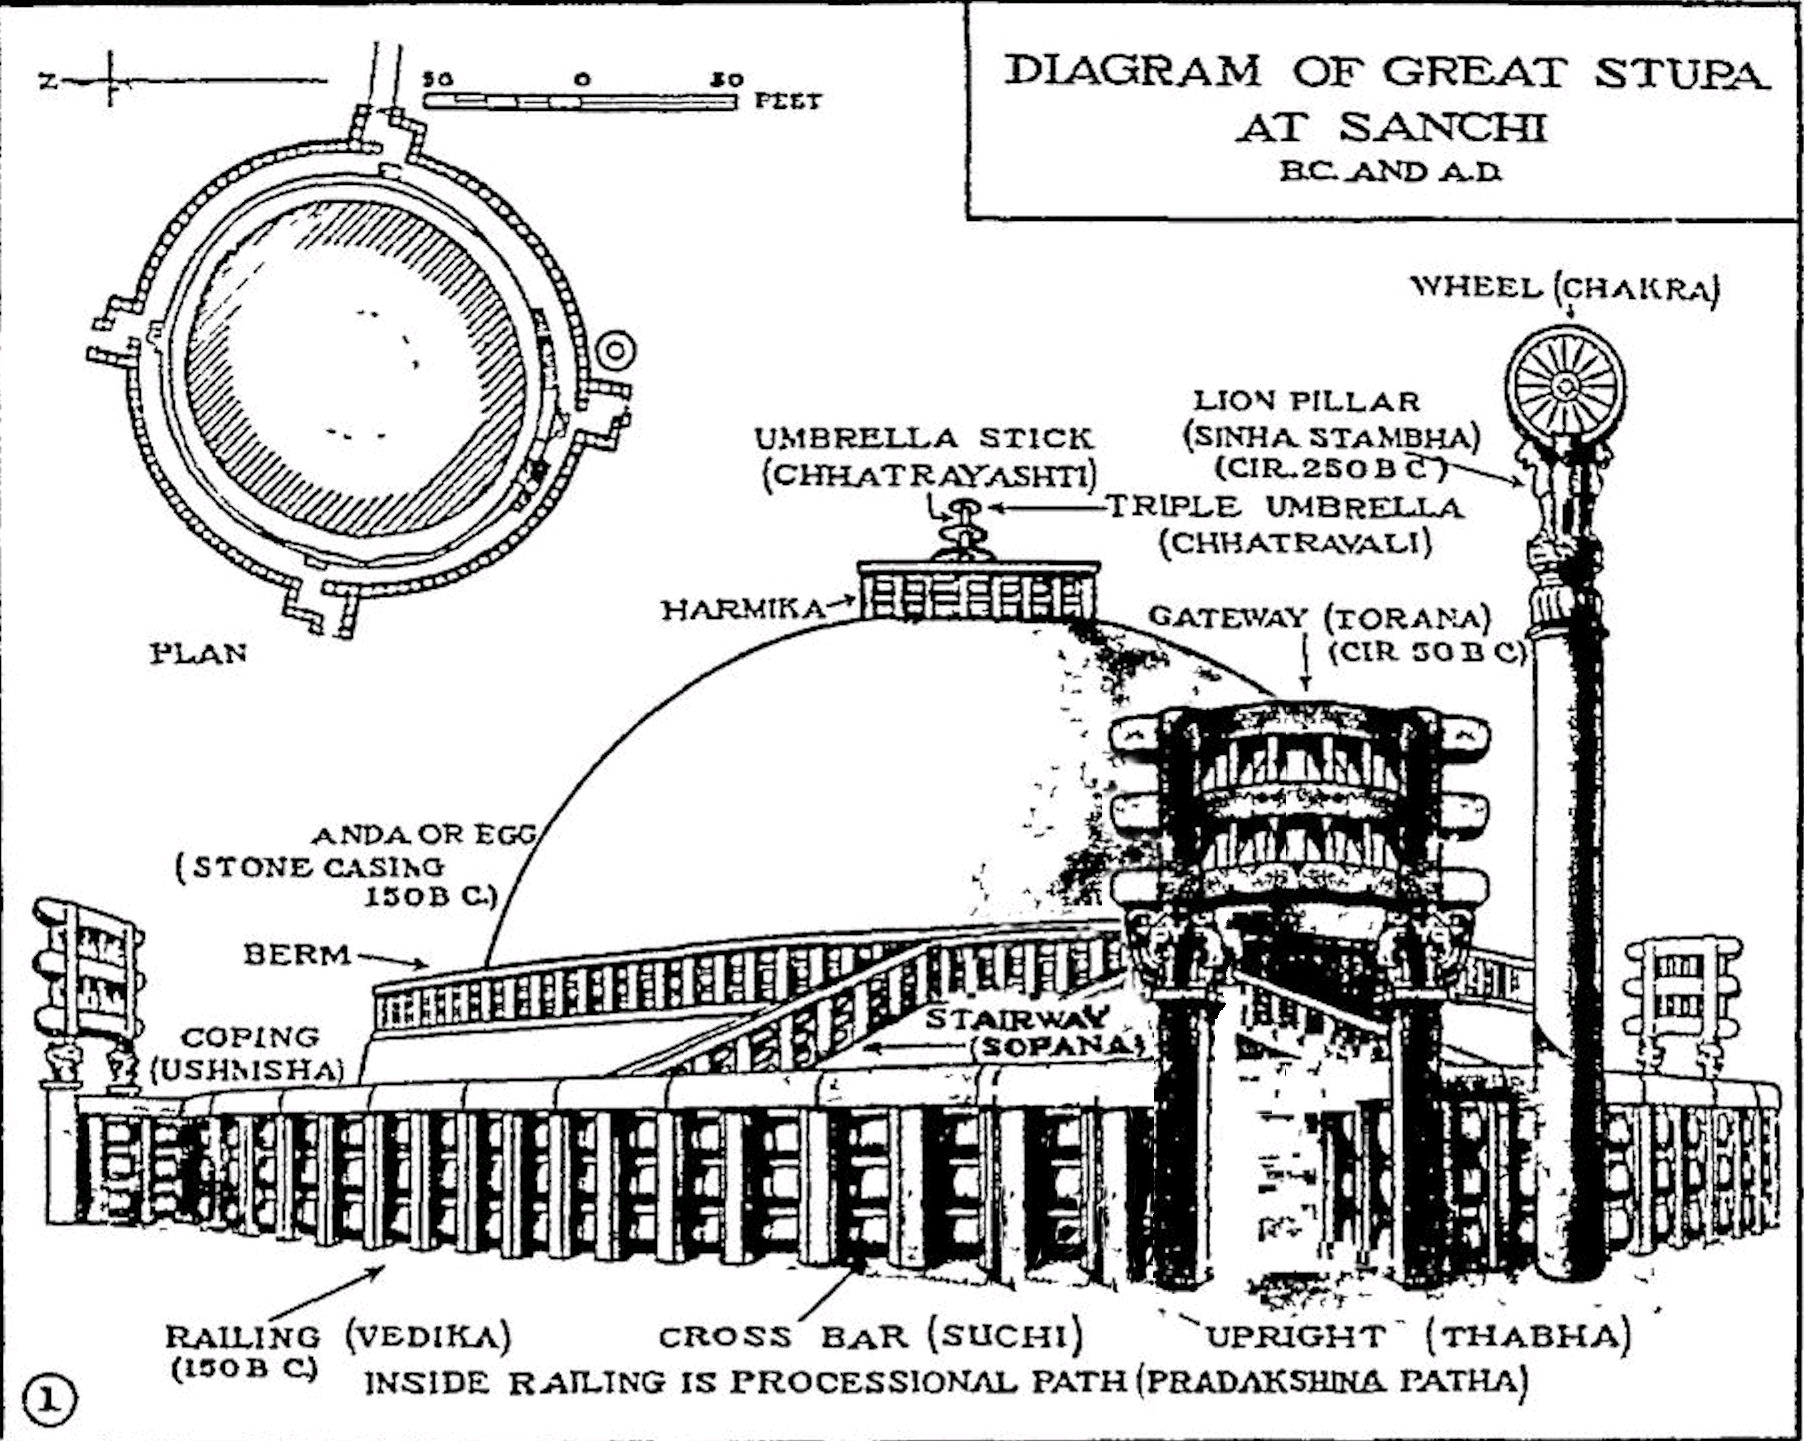 File Sanchi Great Stupa Diagram